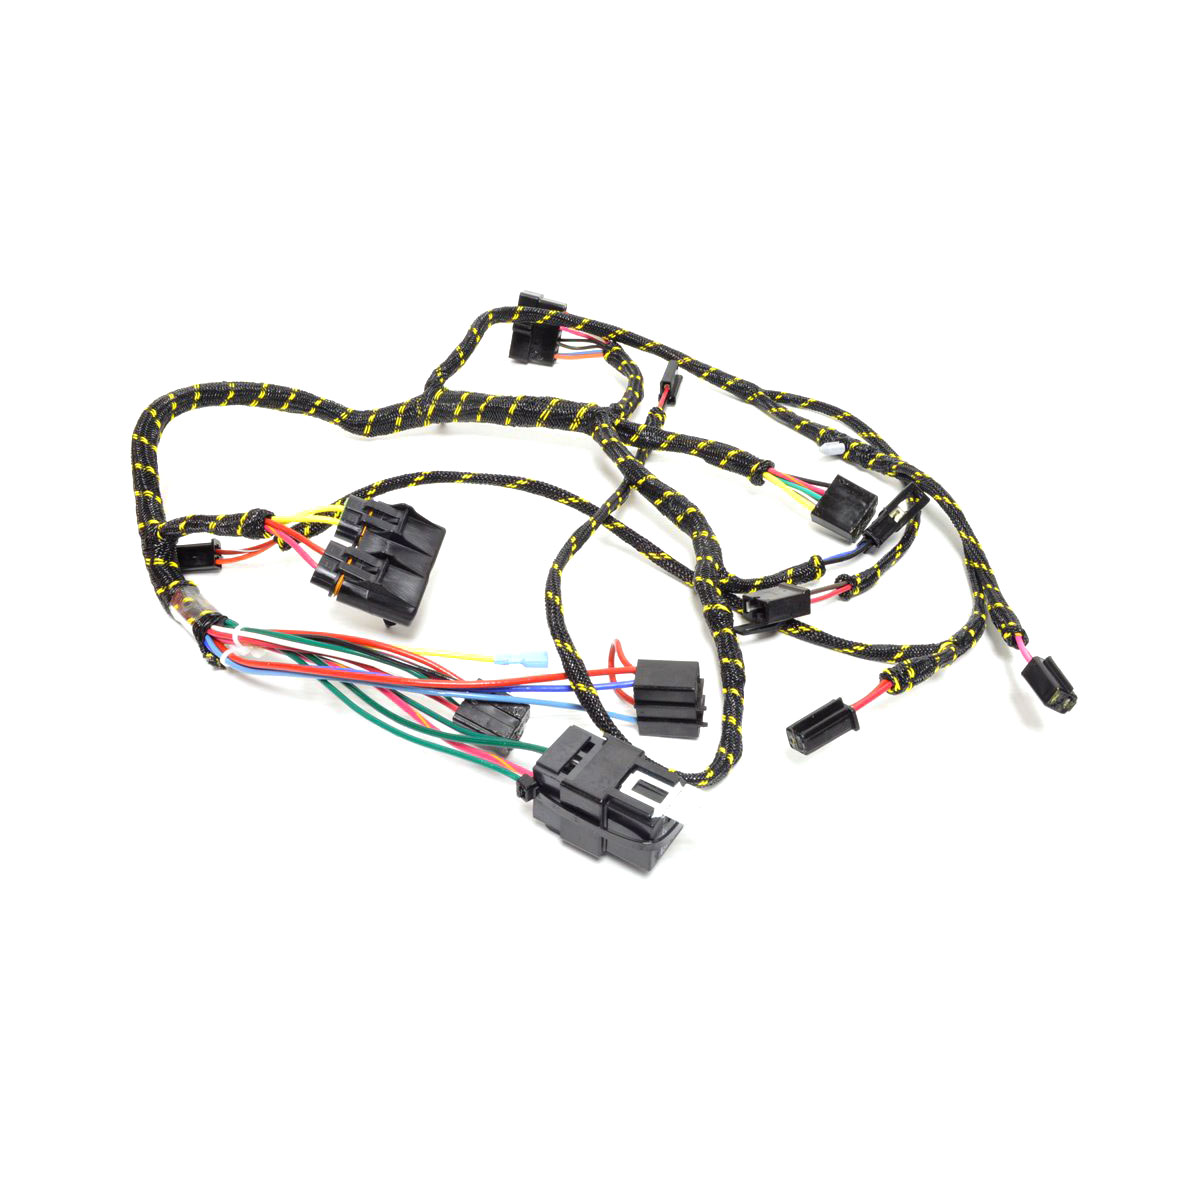 Scag Wire Harness Stc Fx 484649 Wiring